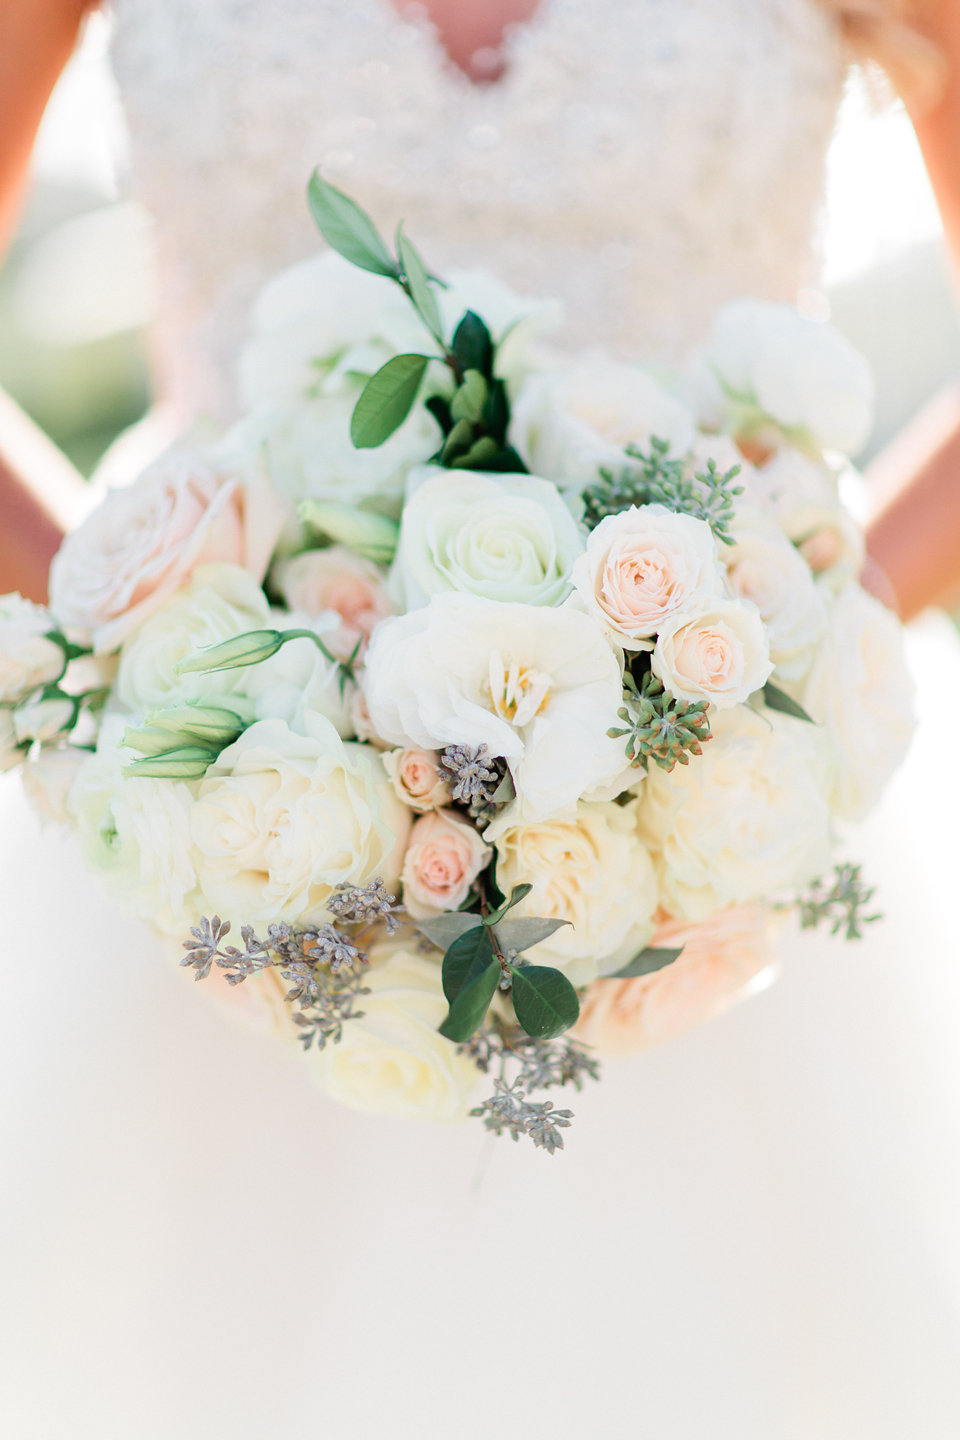 Bridal bouquet of garden roses, eucalyptus, peonies soft blush